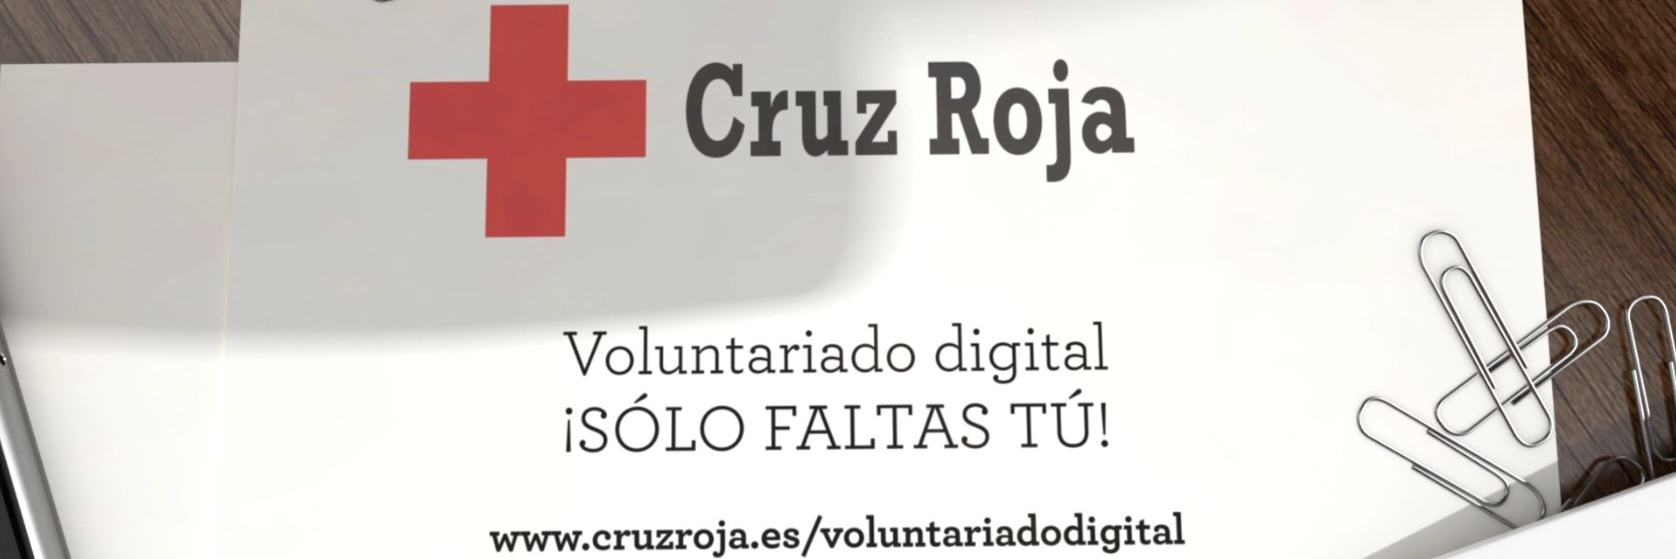 Conoce el Voluntariado Digital de Cruz Roja